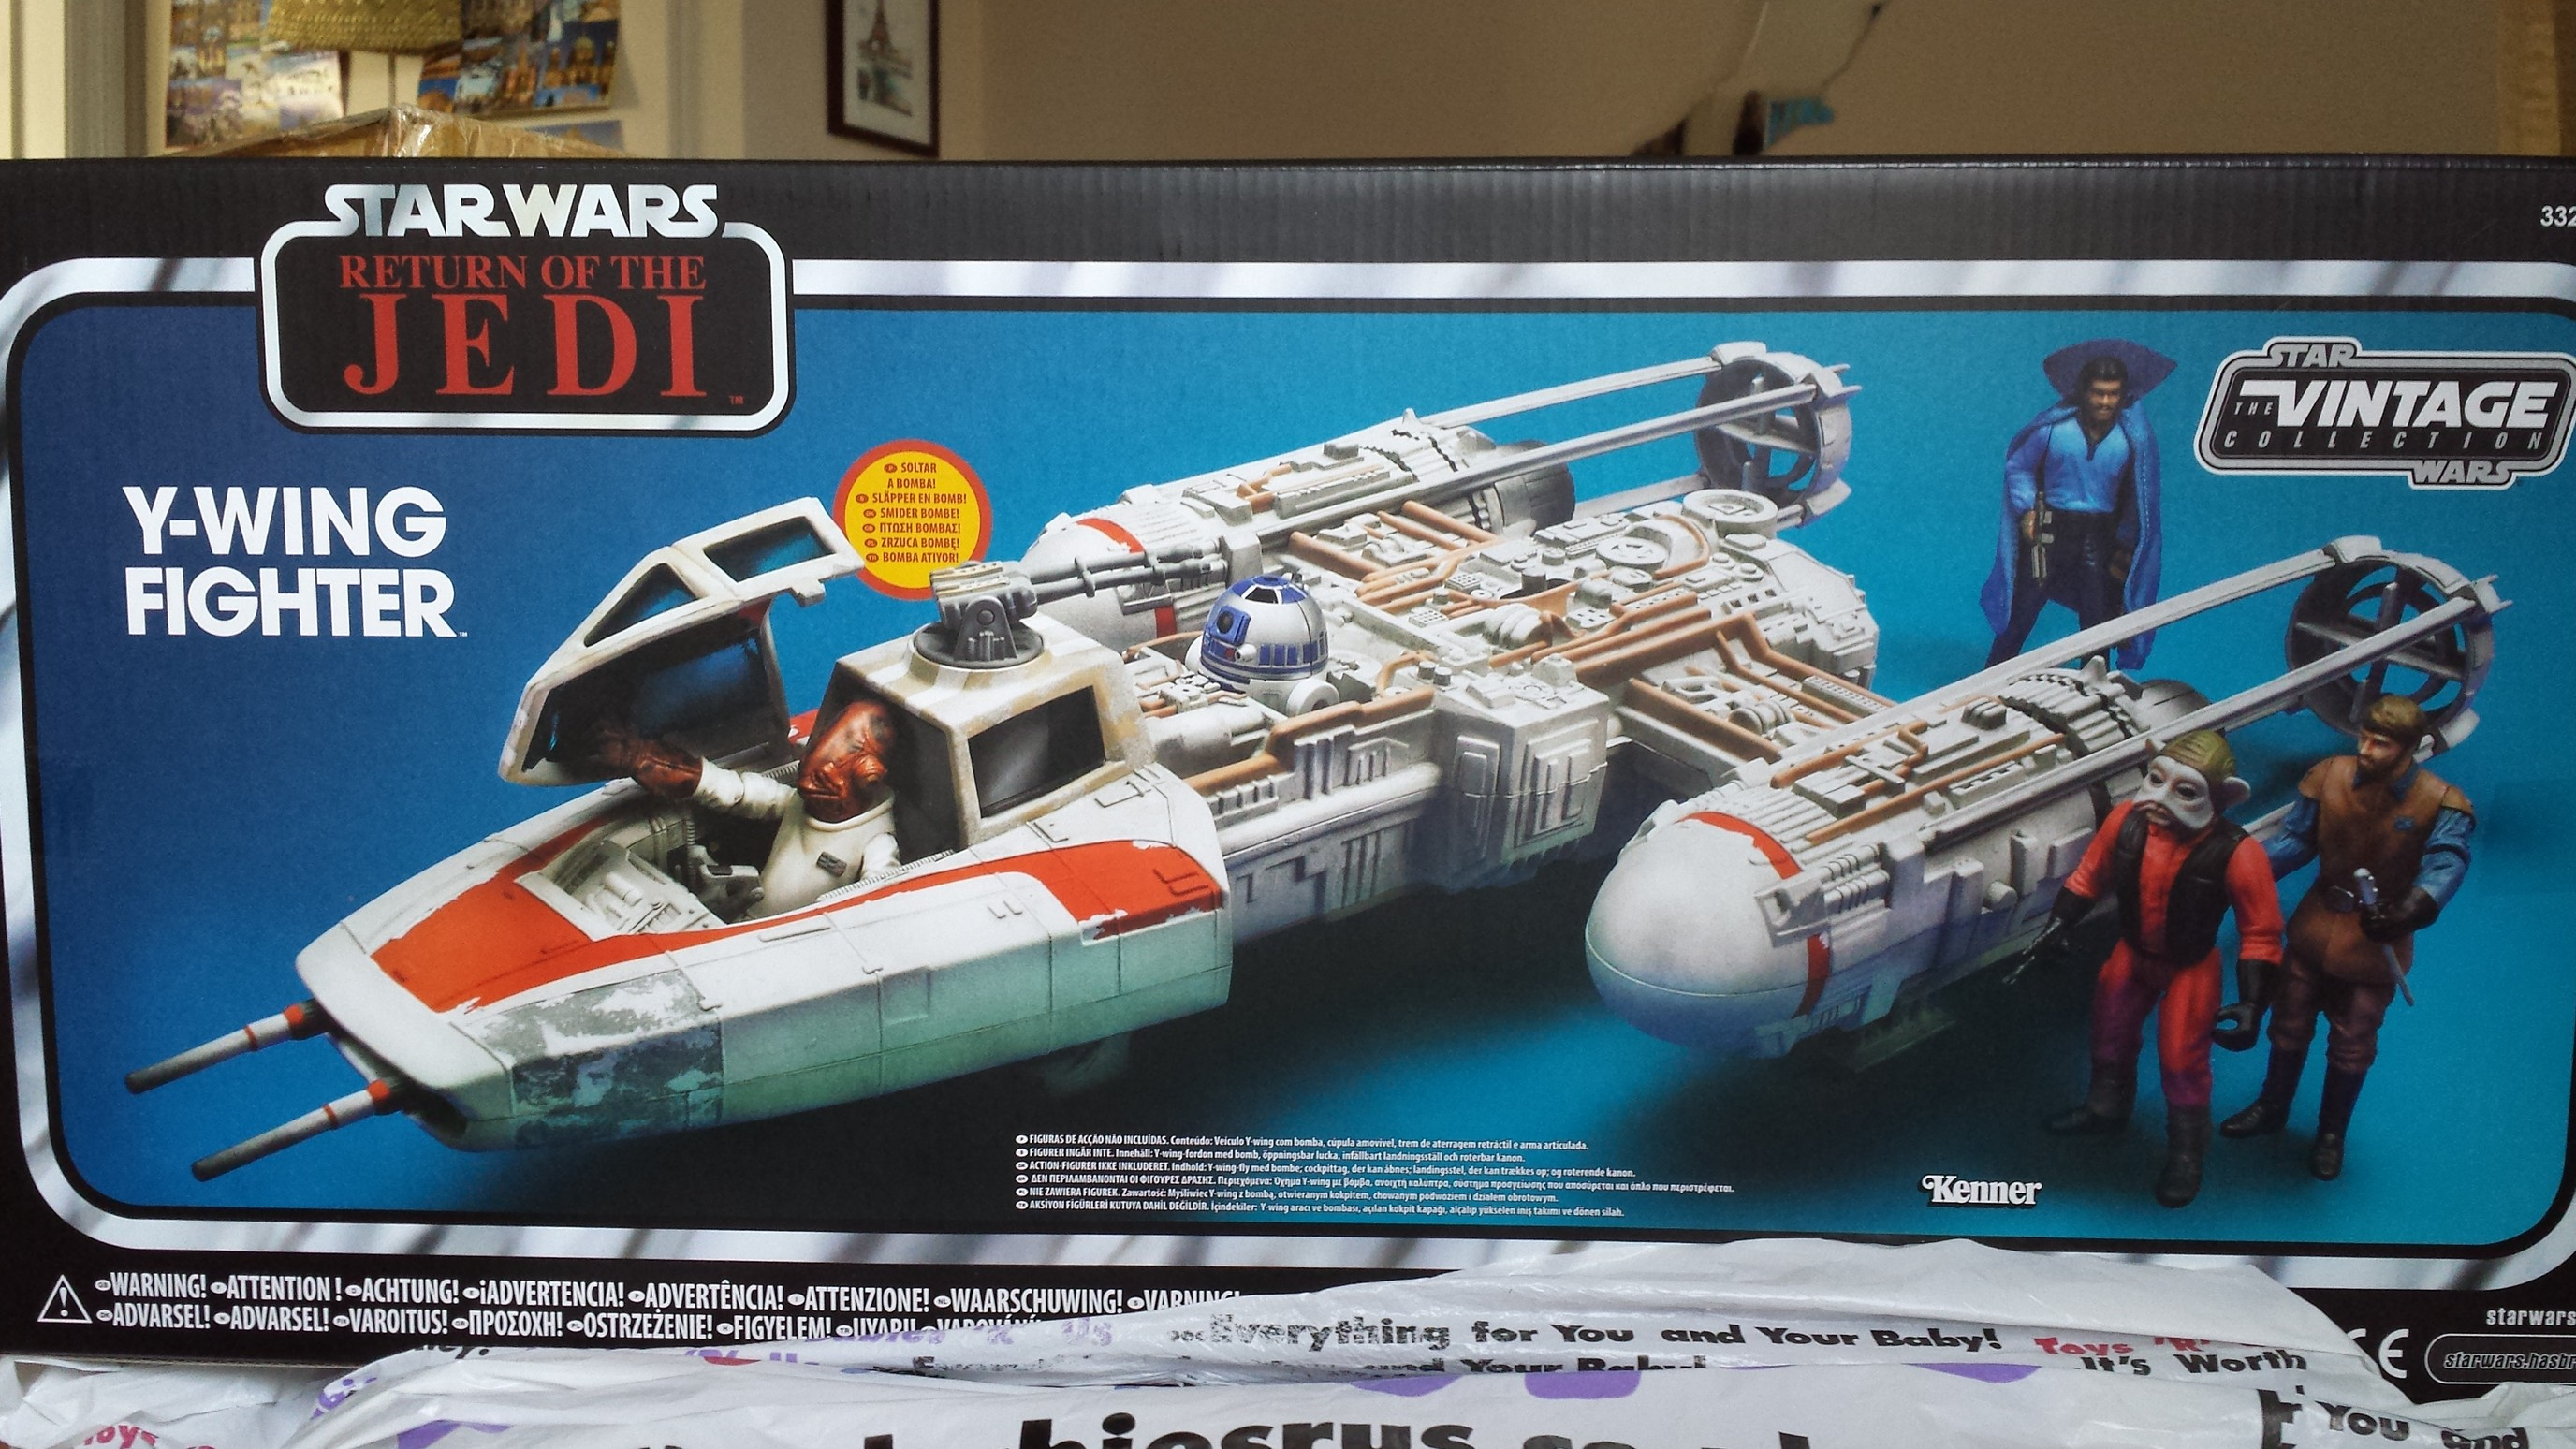 Bombe 94 se rapportant à y-wing fighter (toys 'r us exclusive) - - dash action figures